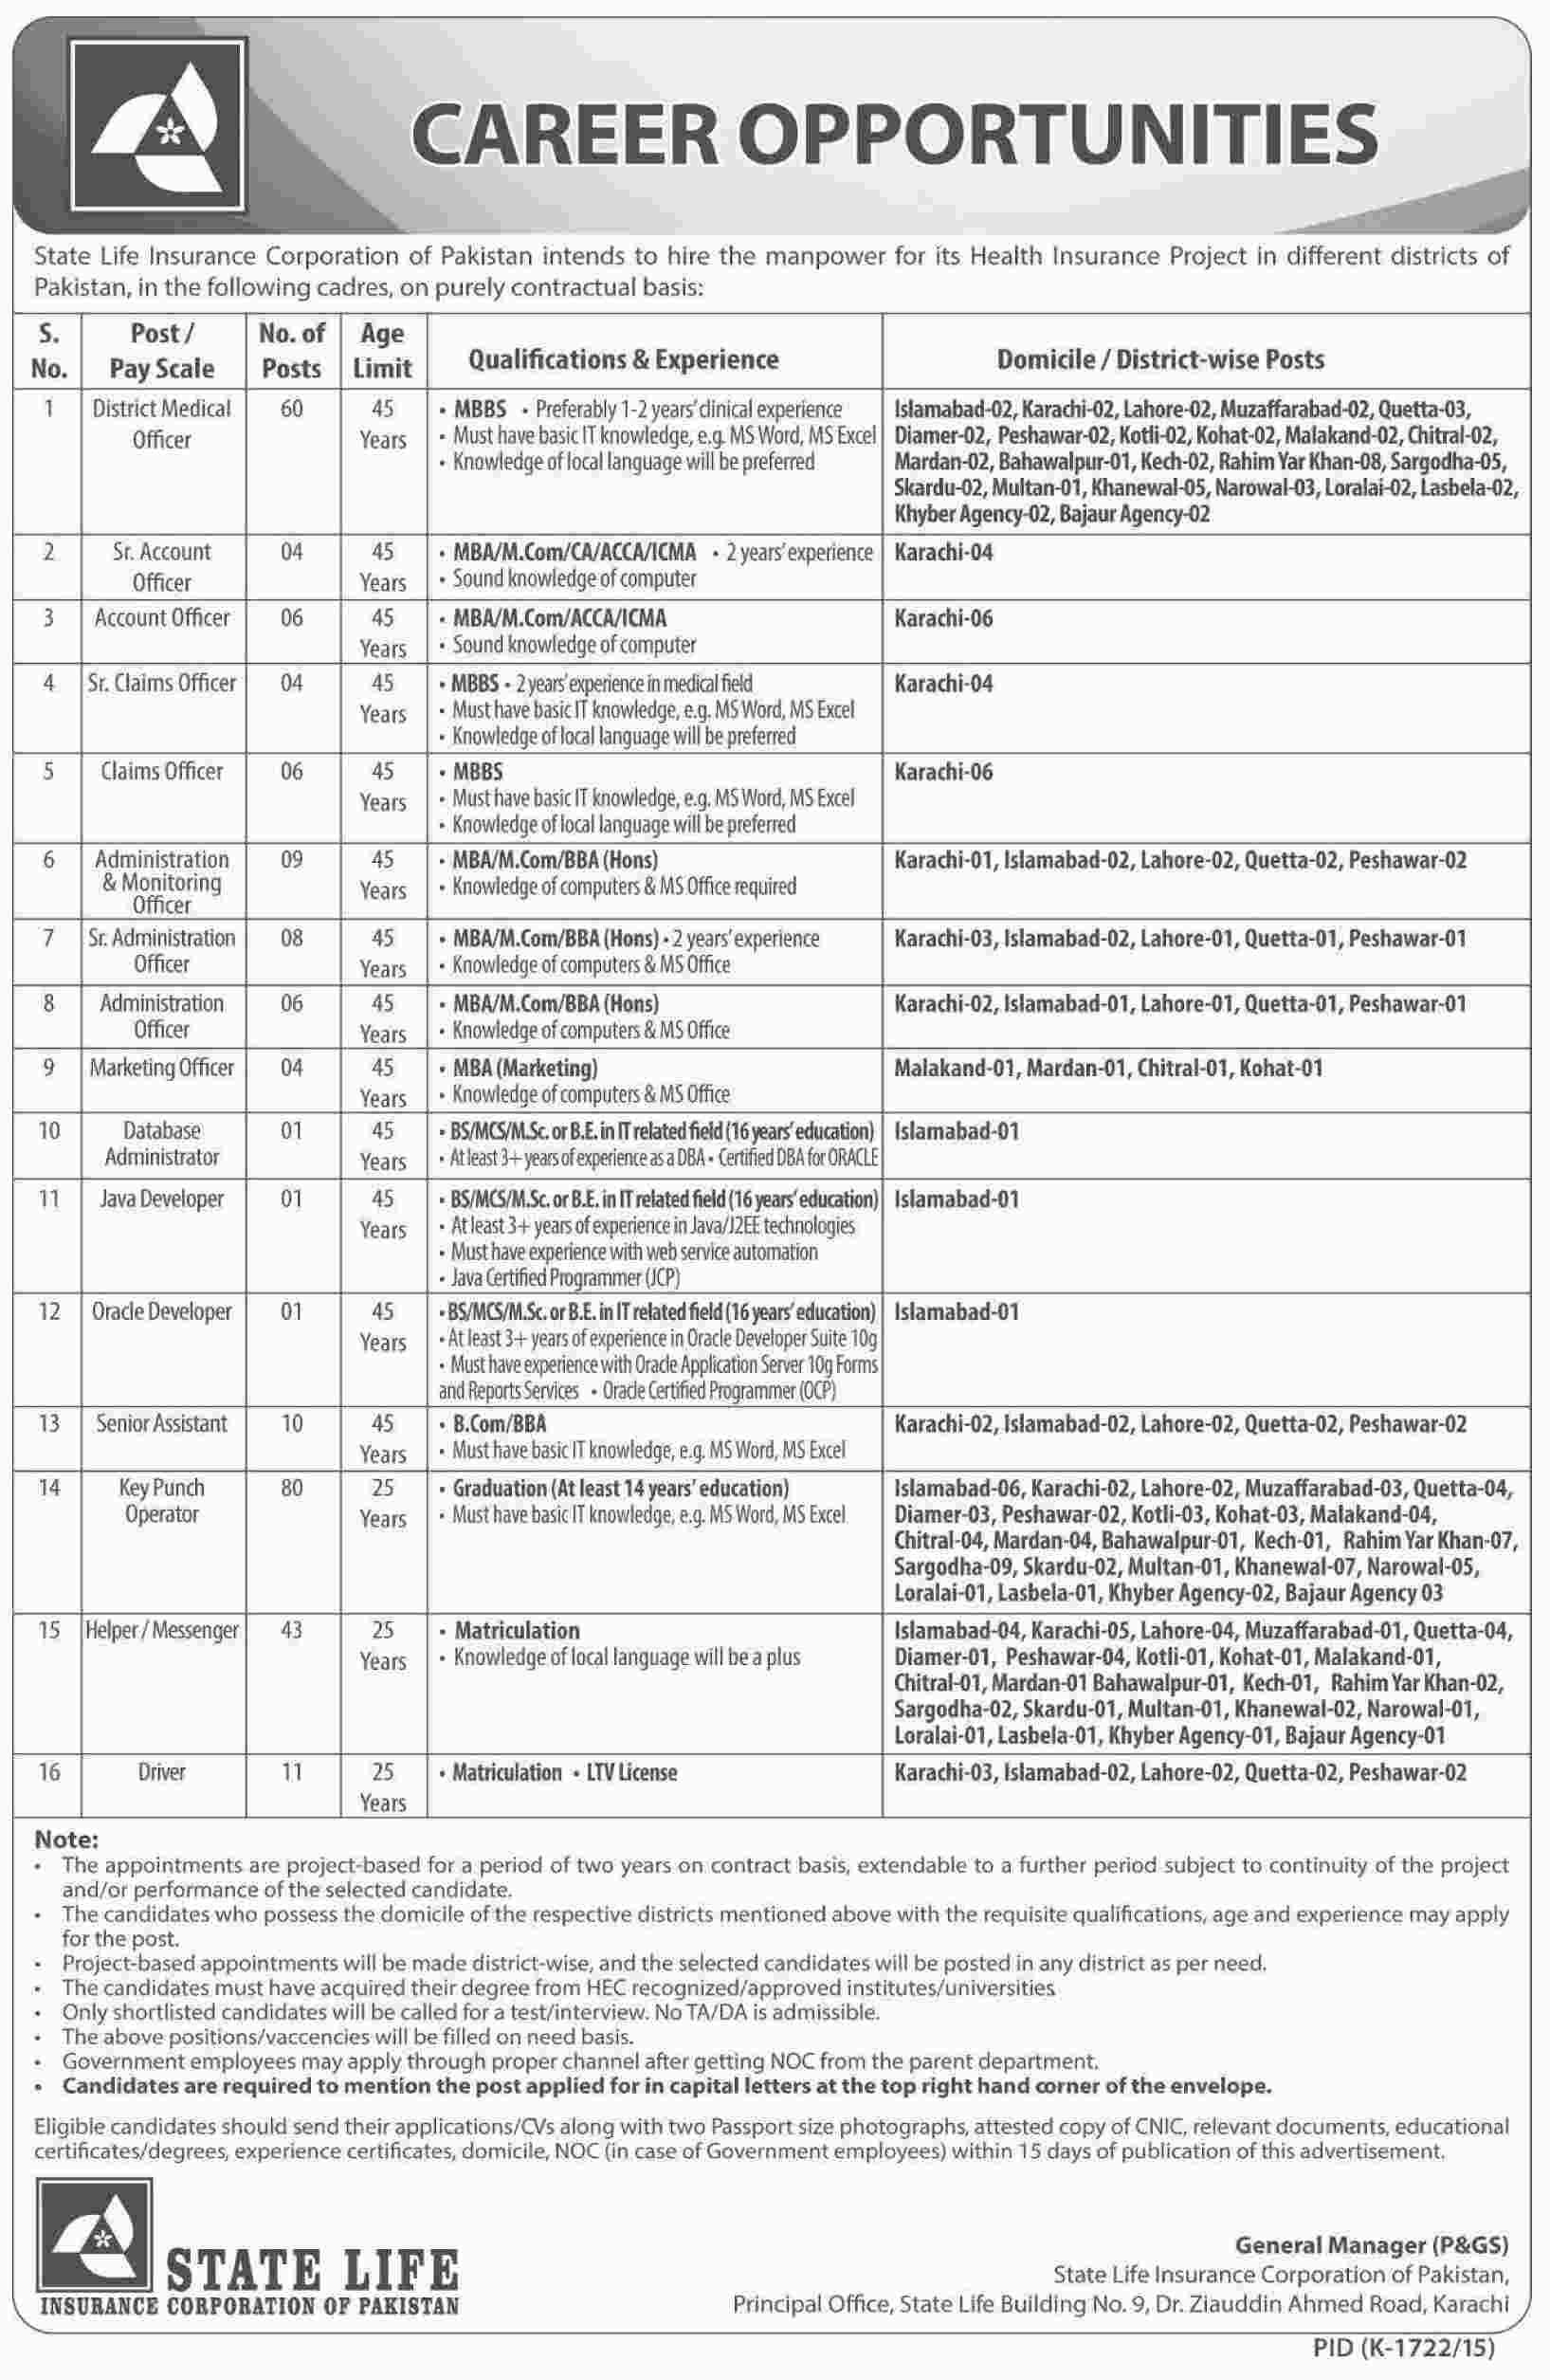 Poonch Medical College Rawalakot Jobs 2015 | Private Jobs | Pinterest |  Medical College, Medical And College